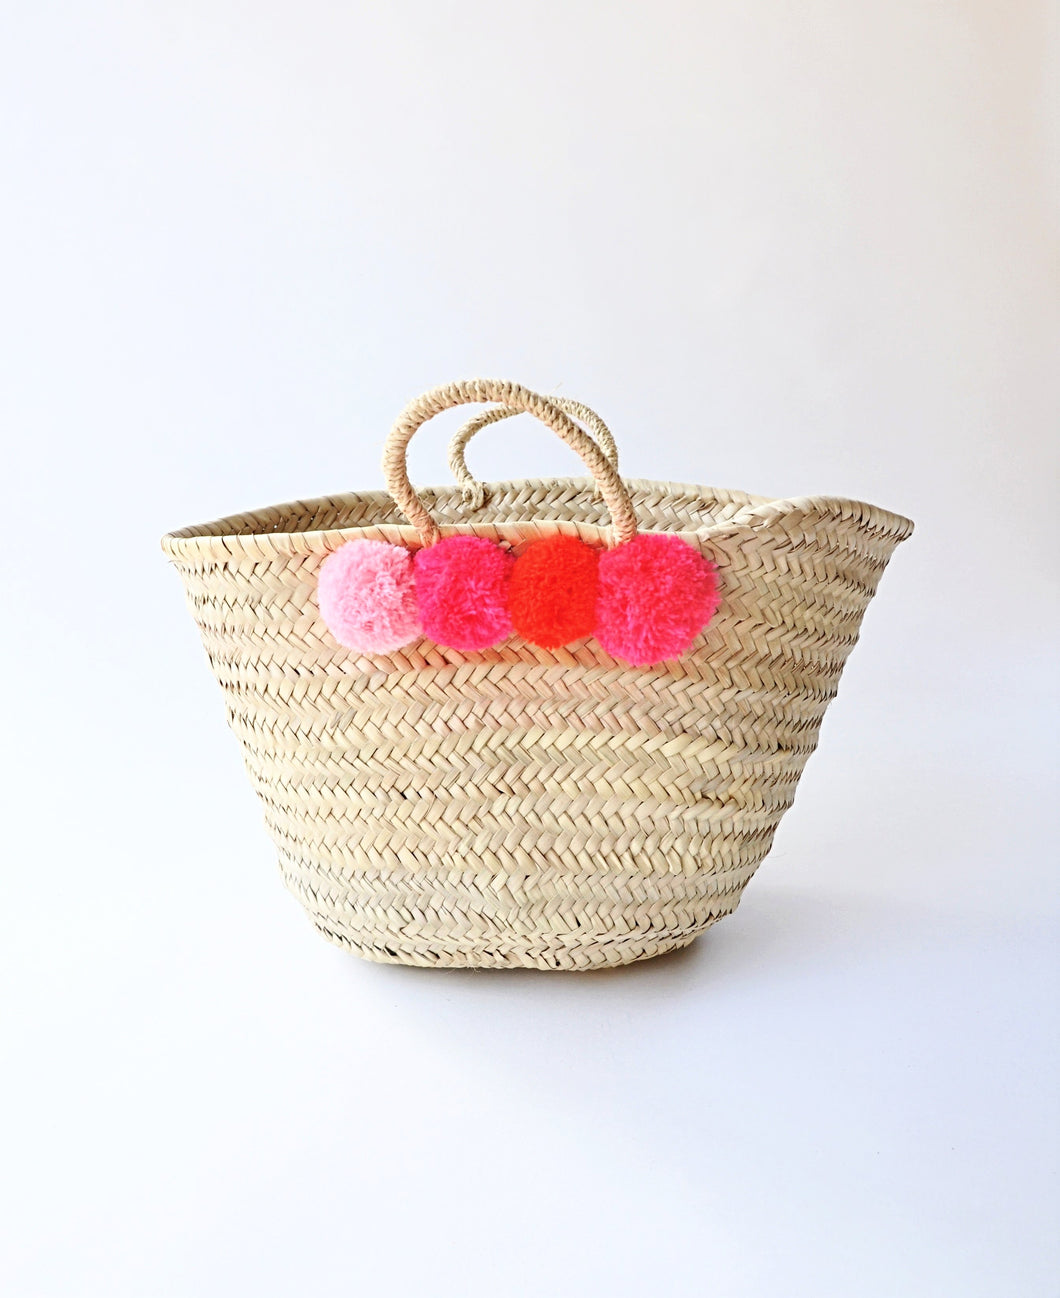 Marrakesh Shopper Straw  Basket - MãeAzul